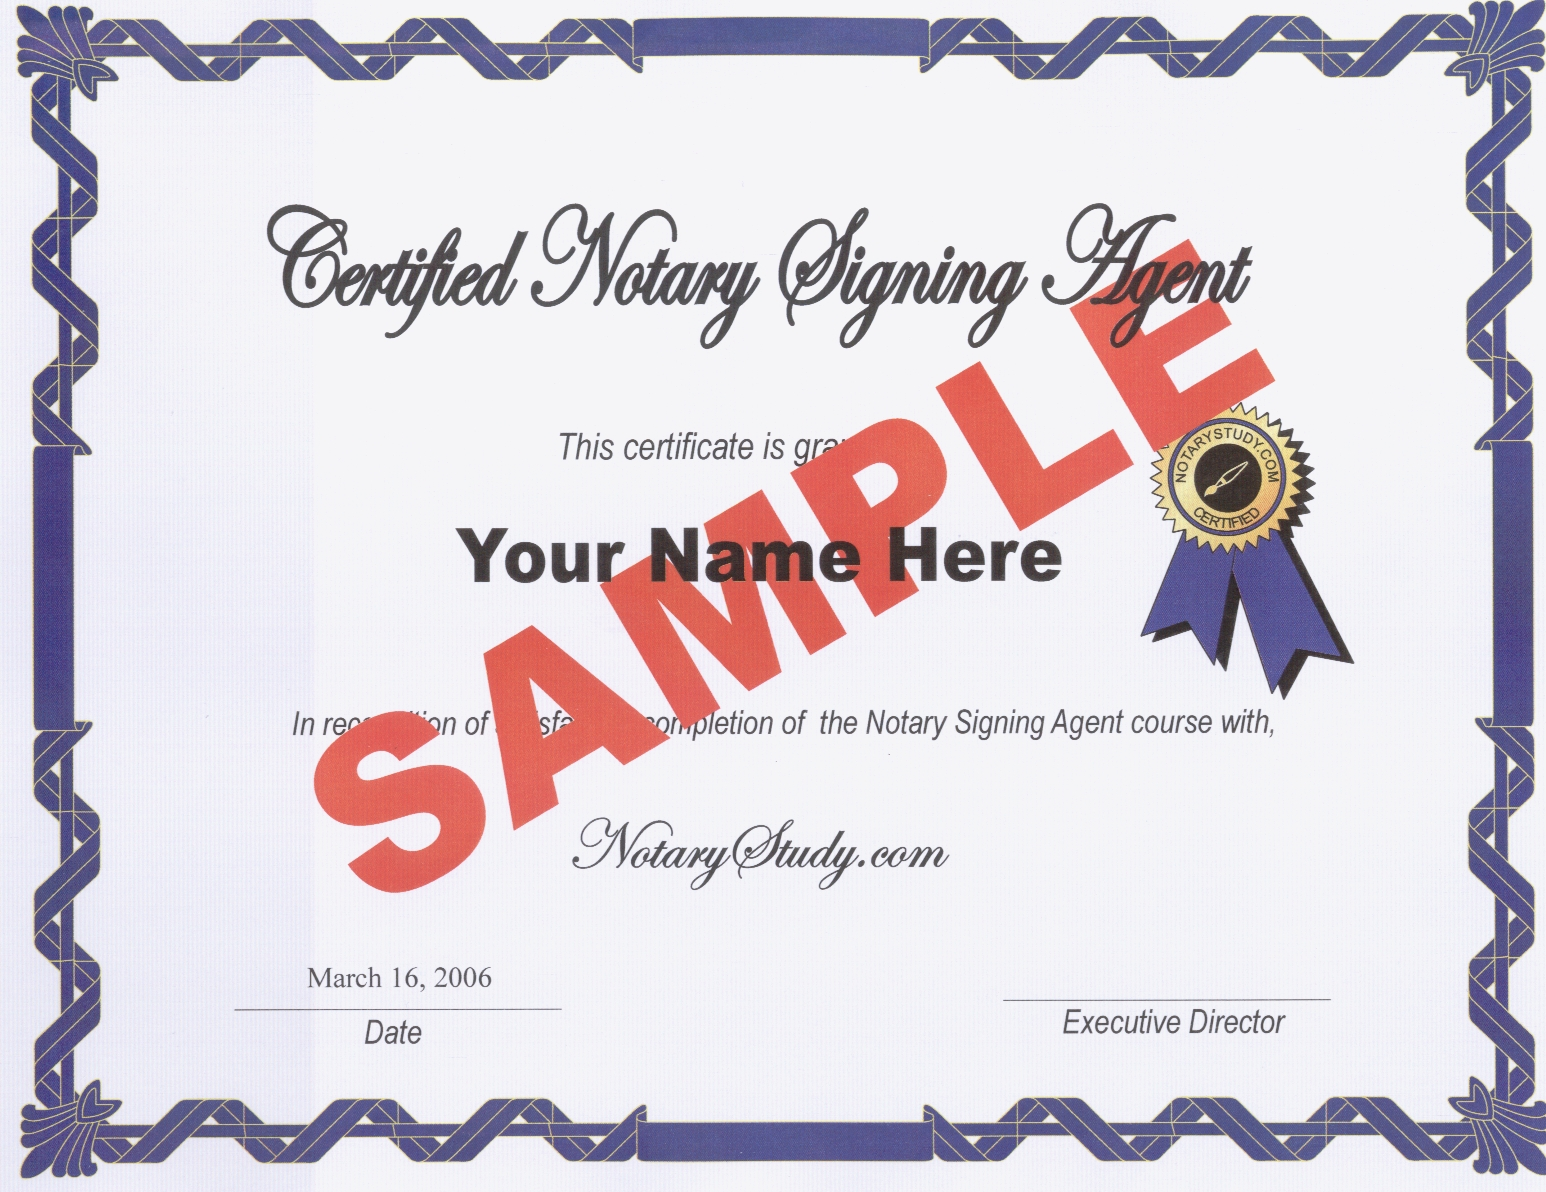 New york notary signing agent your notary signing agent certificate sent by first class mail after you pass the certification exam click here publicscrutiny Image collections